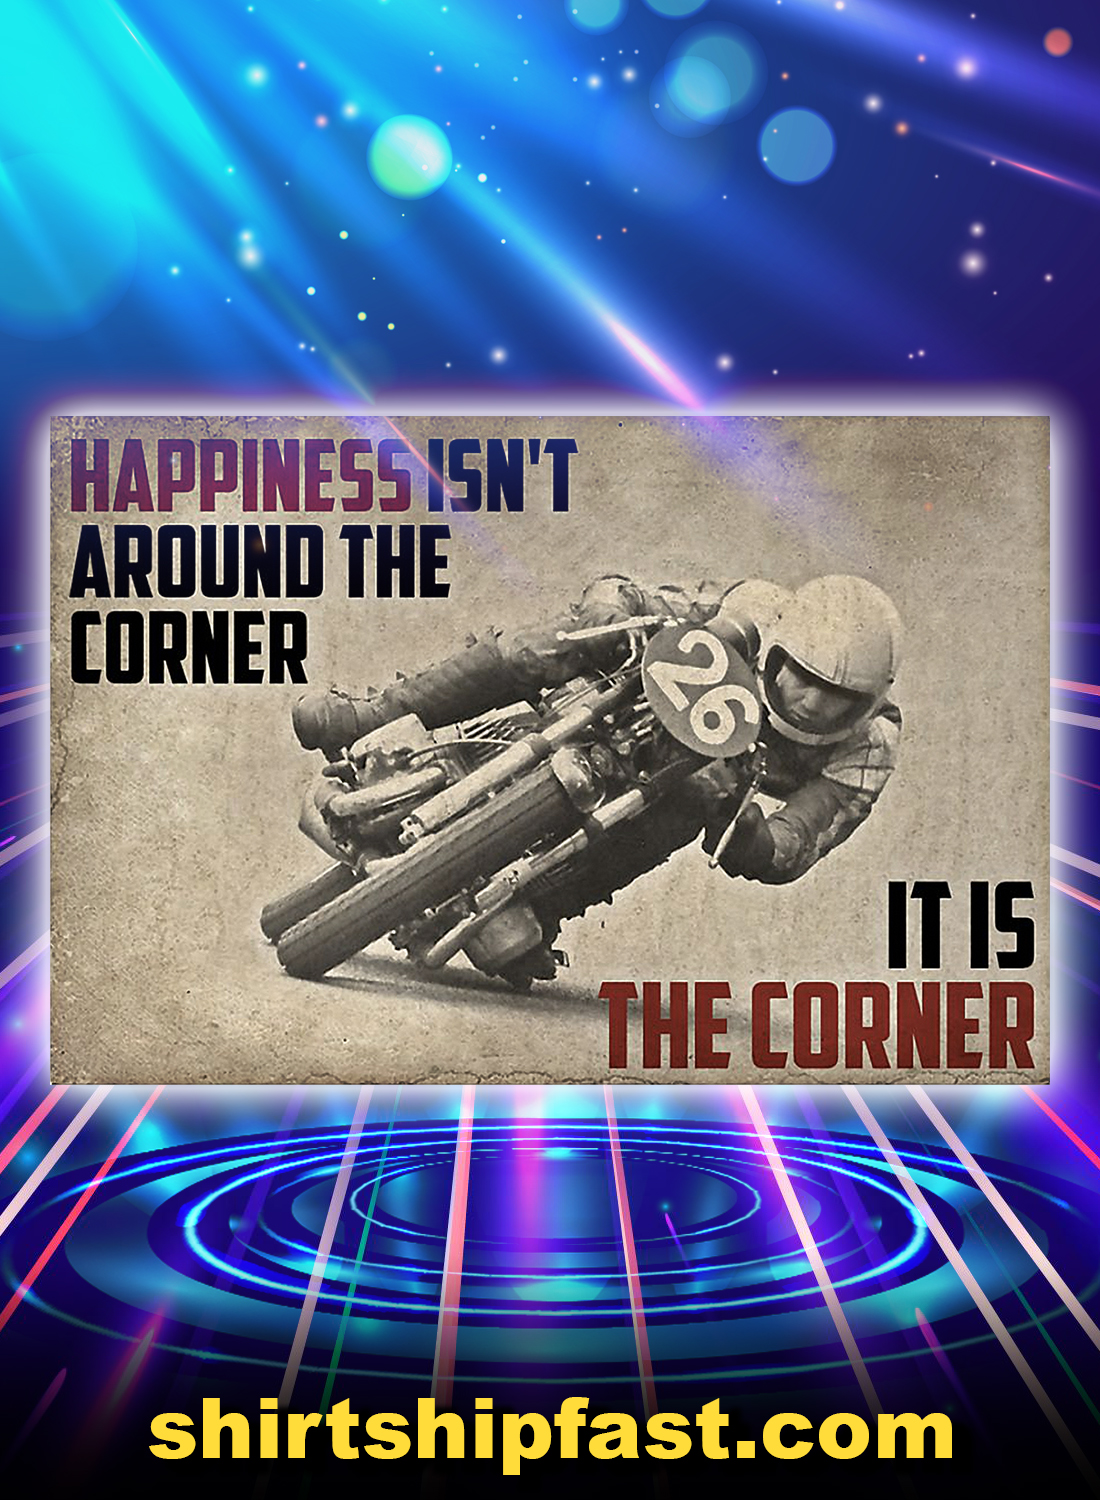 Motorcycle happiness isn't around the corner canvas